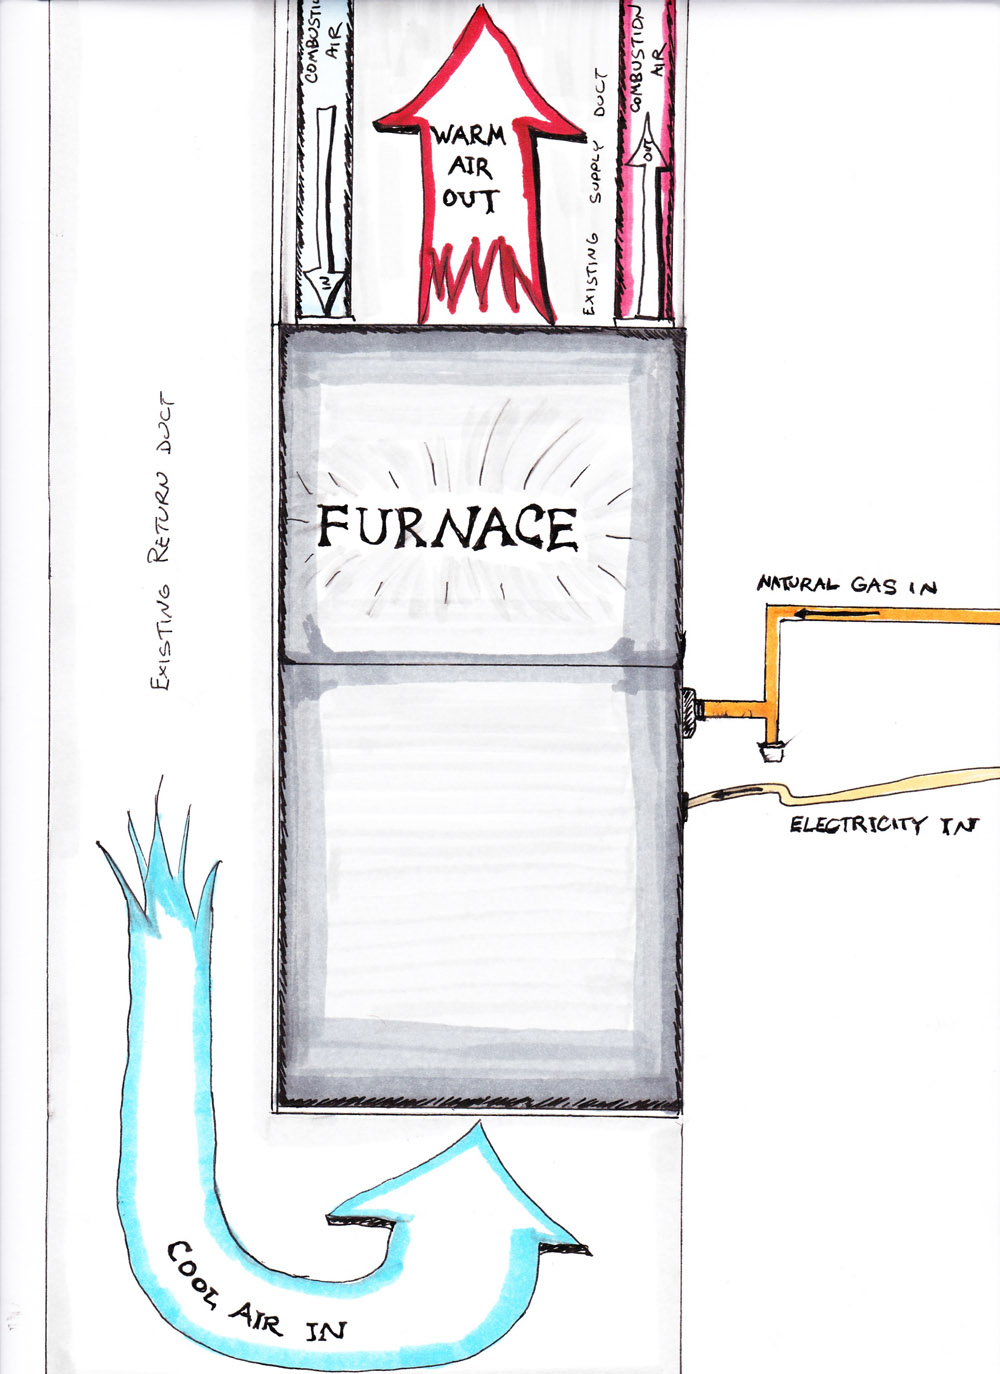 Radiant Ceiling Heat Wiring Schematic How To Replace Your Own Furnace